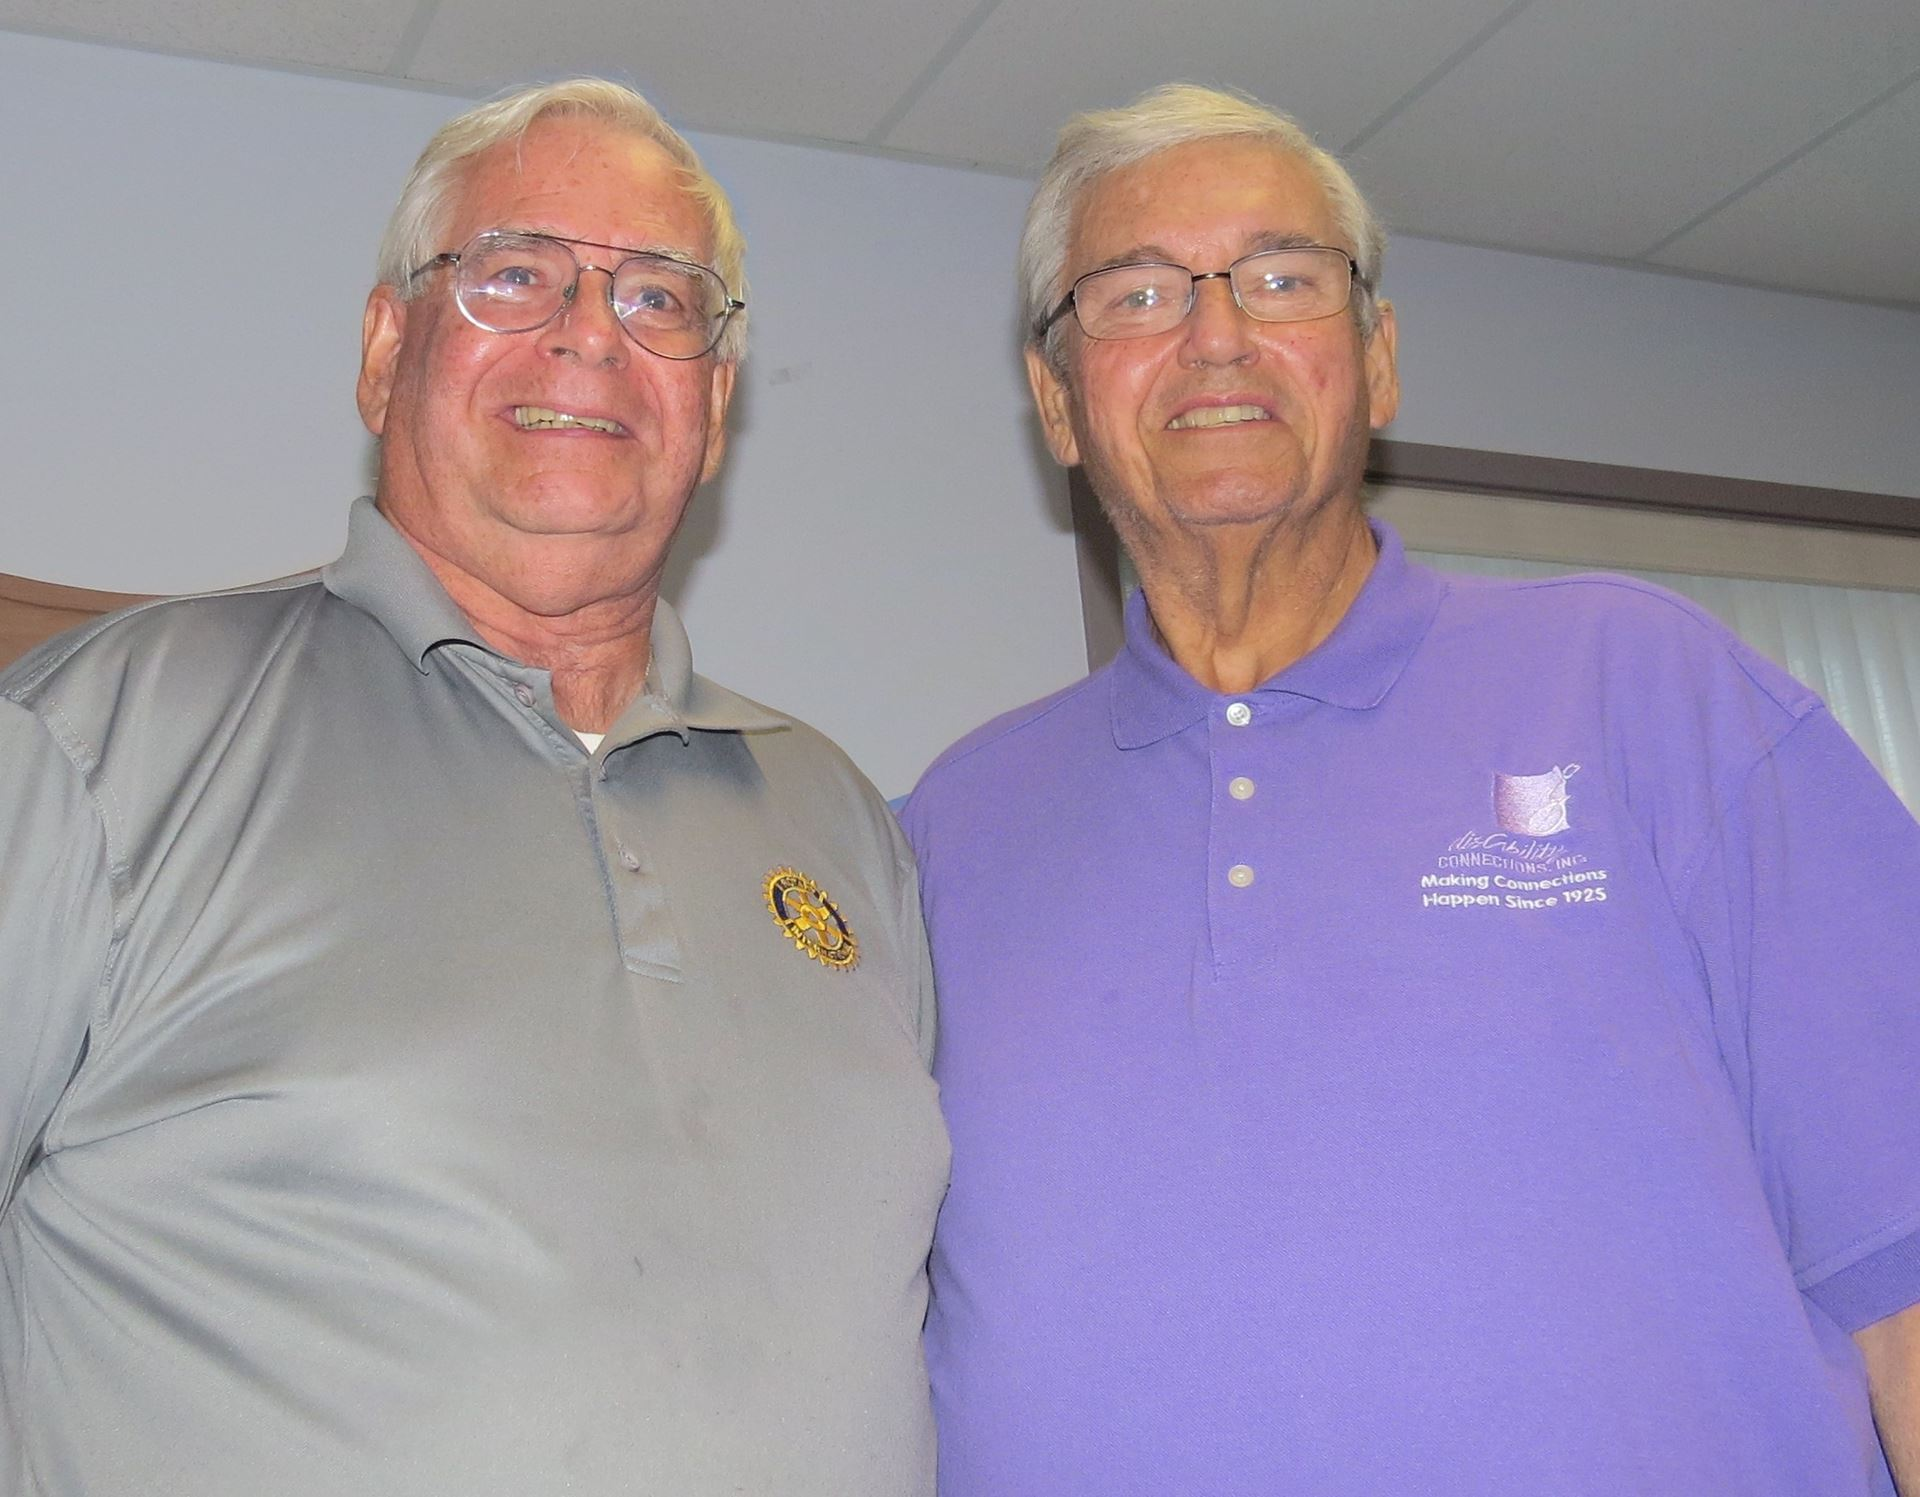 two older men stand side by side and smile down towards a camera. The man on the left wears a grey collared shirt, glasses and has short white hair. The man on the right also has short white hair, glasses, but is wearing a short sleeved collared purple shirt